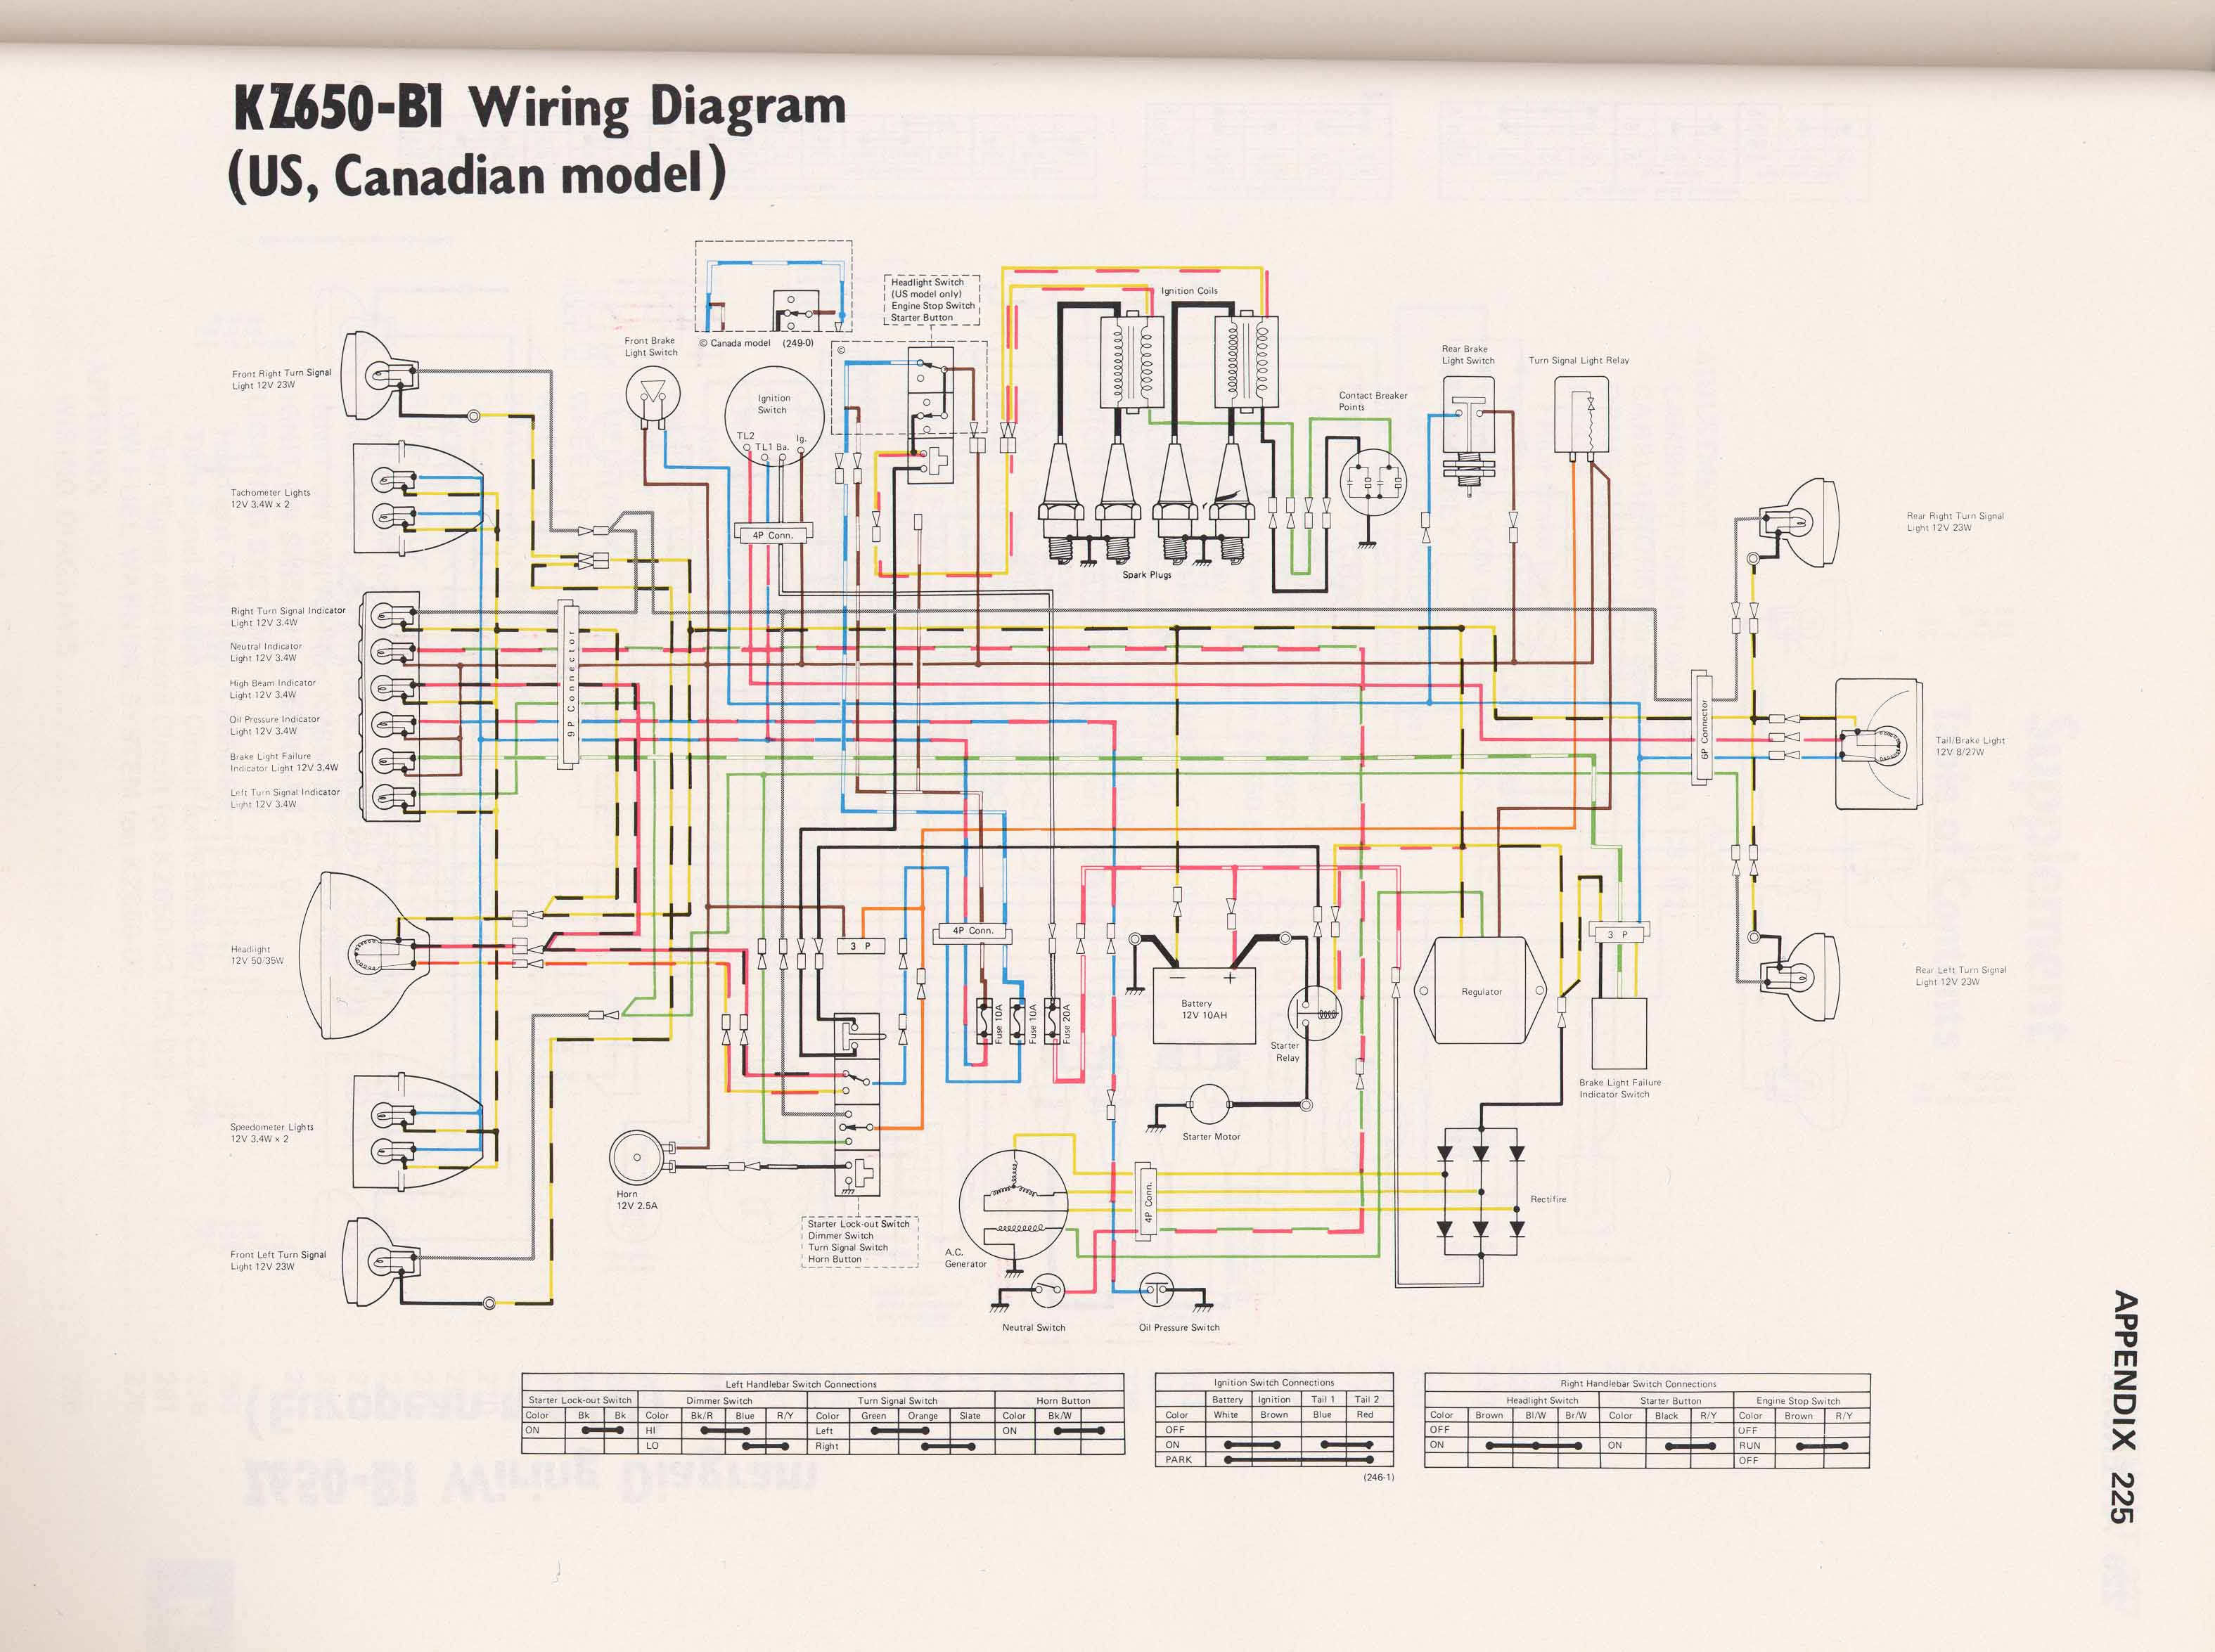 Kz650 Wiring Harness Diagram - custom project wiring diagram on